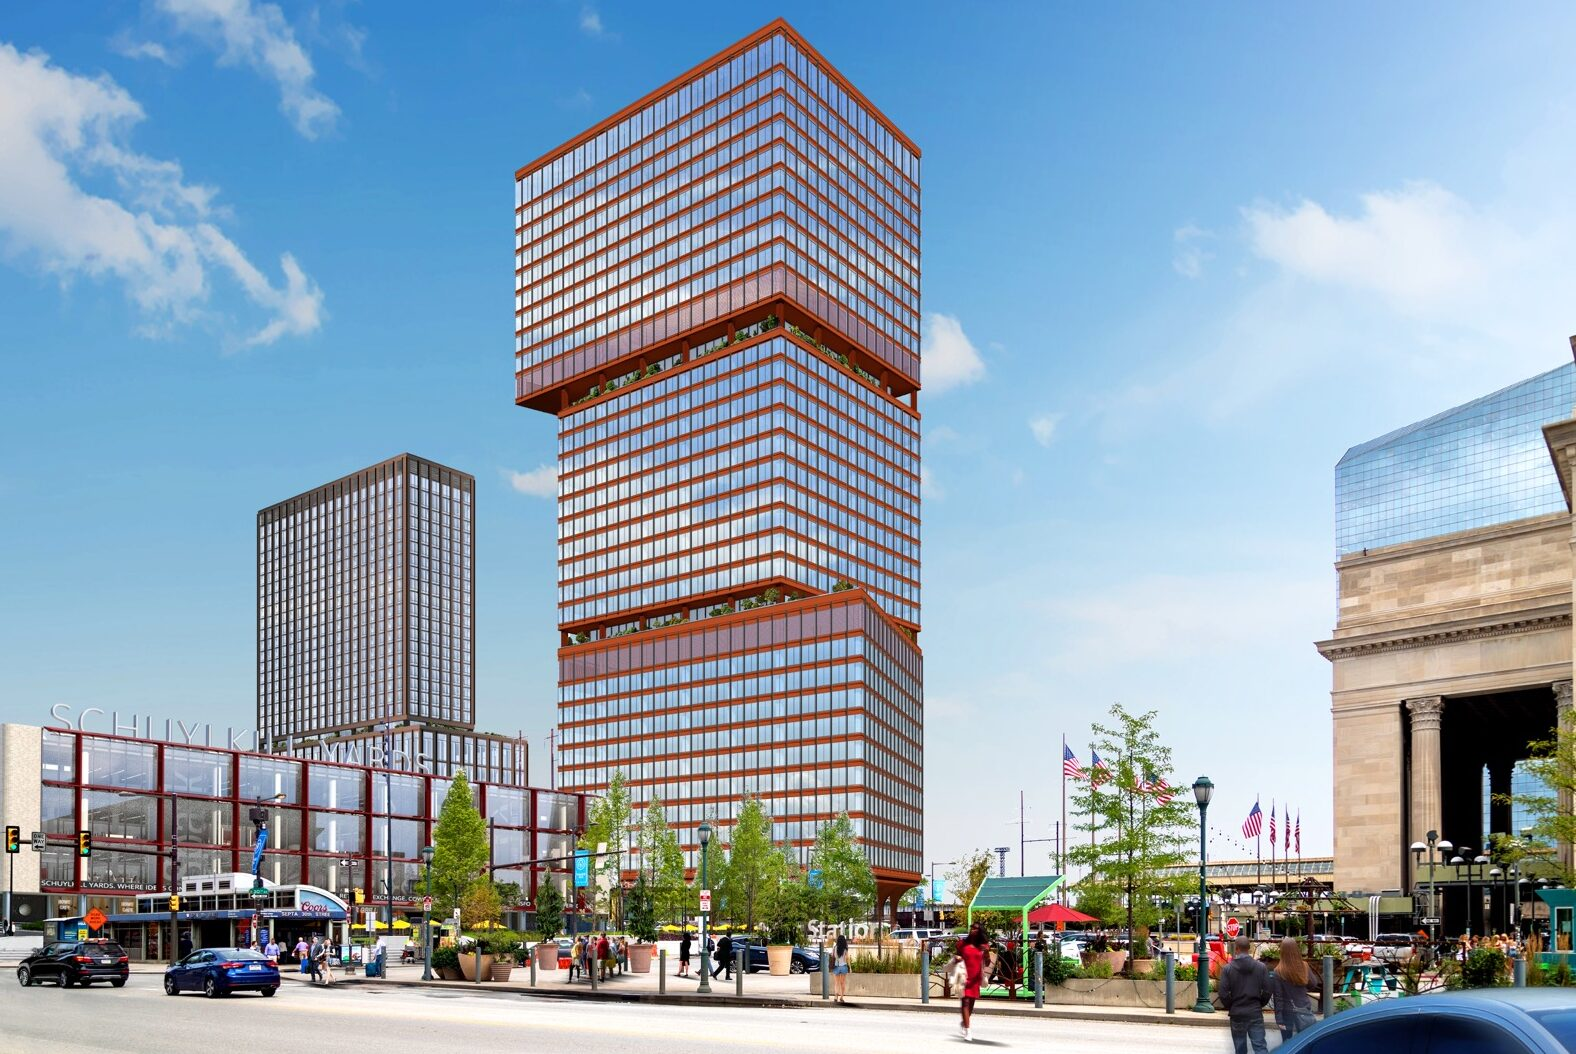 rendering of segmented red tower